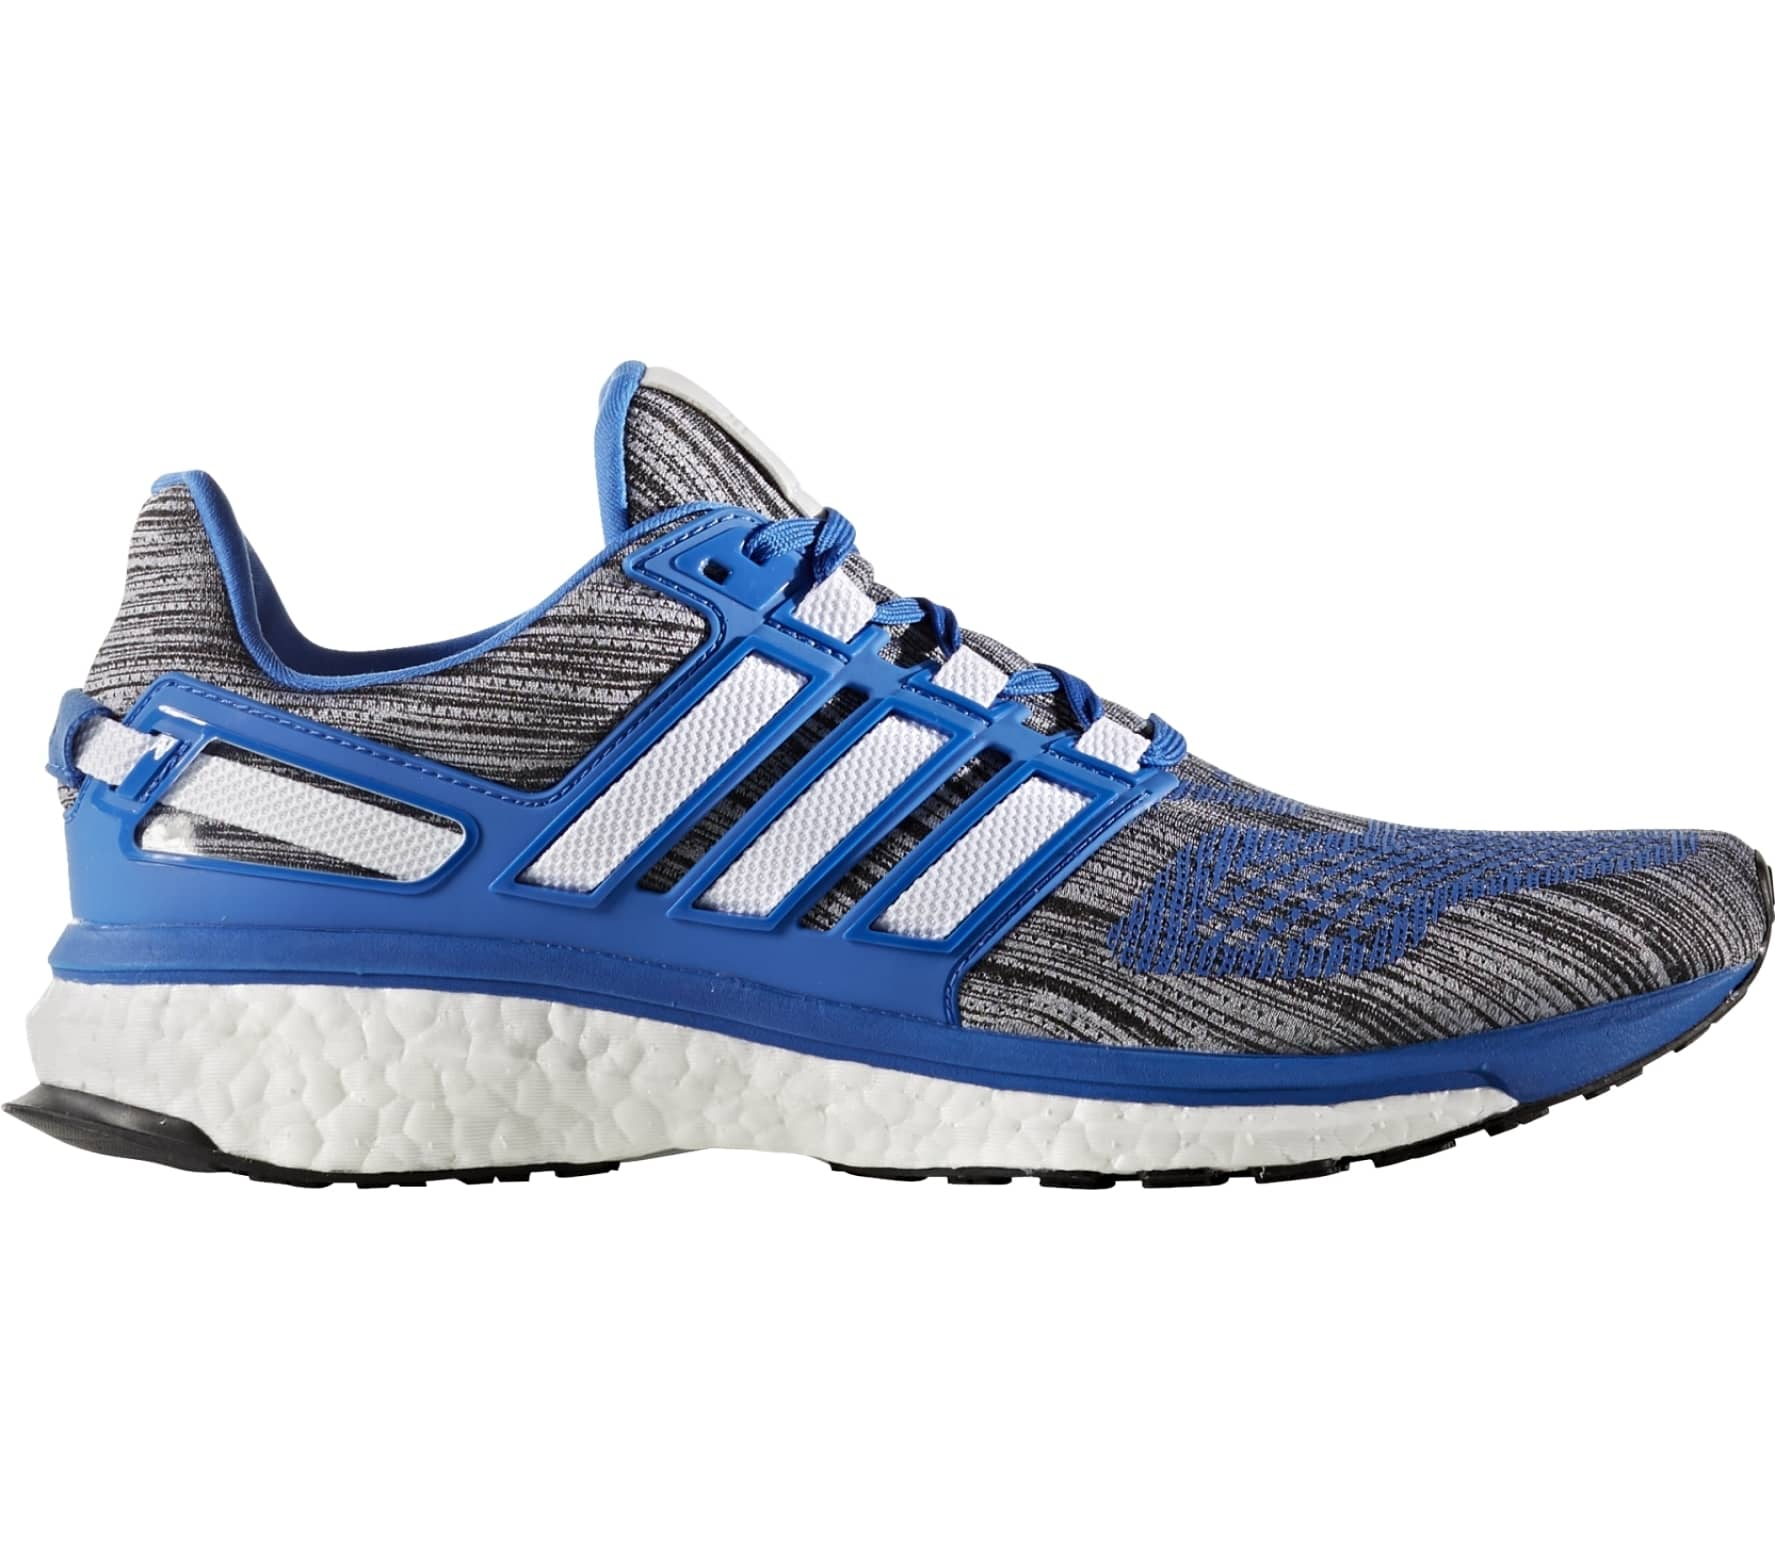 3 Boost Adidas Boost 3 Adidas Energy Energy Hommes qcR354jALS